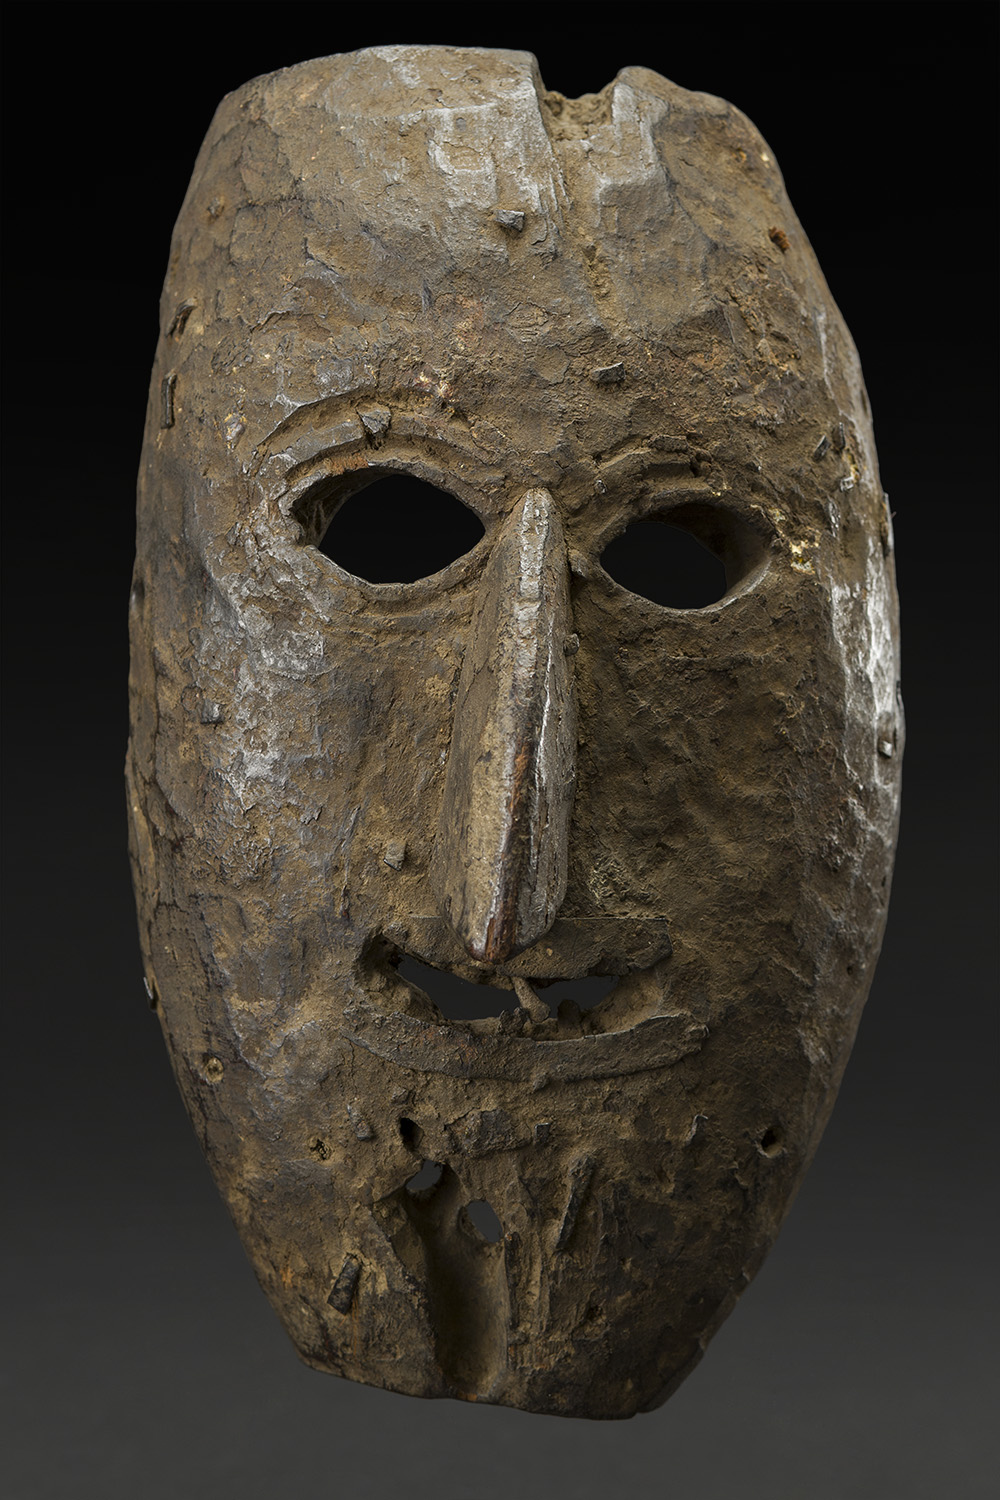 Masks    Nepal  , Early 20th C. Wood 10.5 x 6 x 4 inches 26.7 x 15.2 x 10.2 cm M 225s